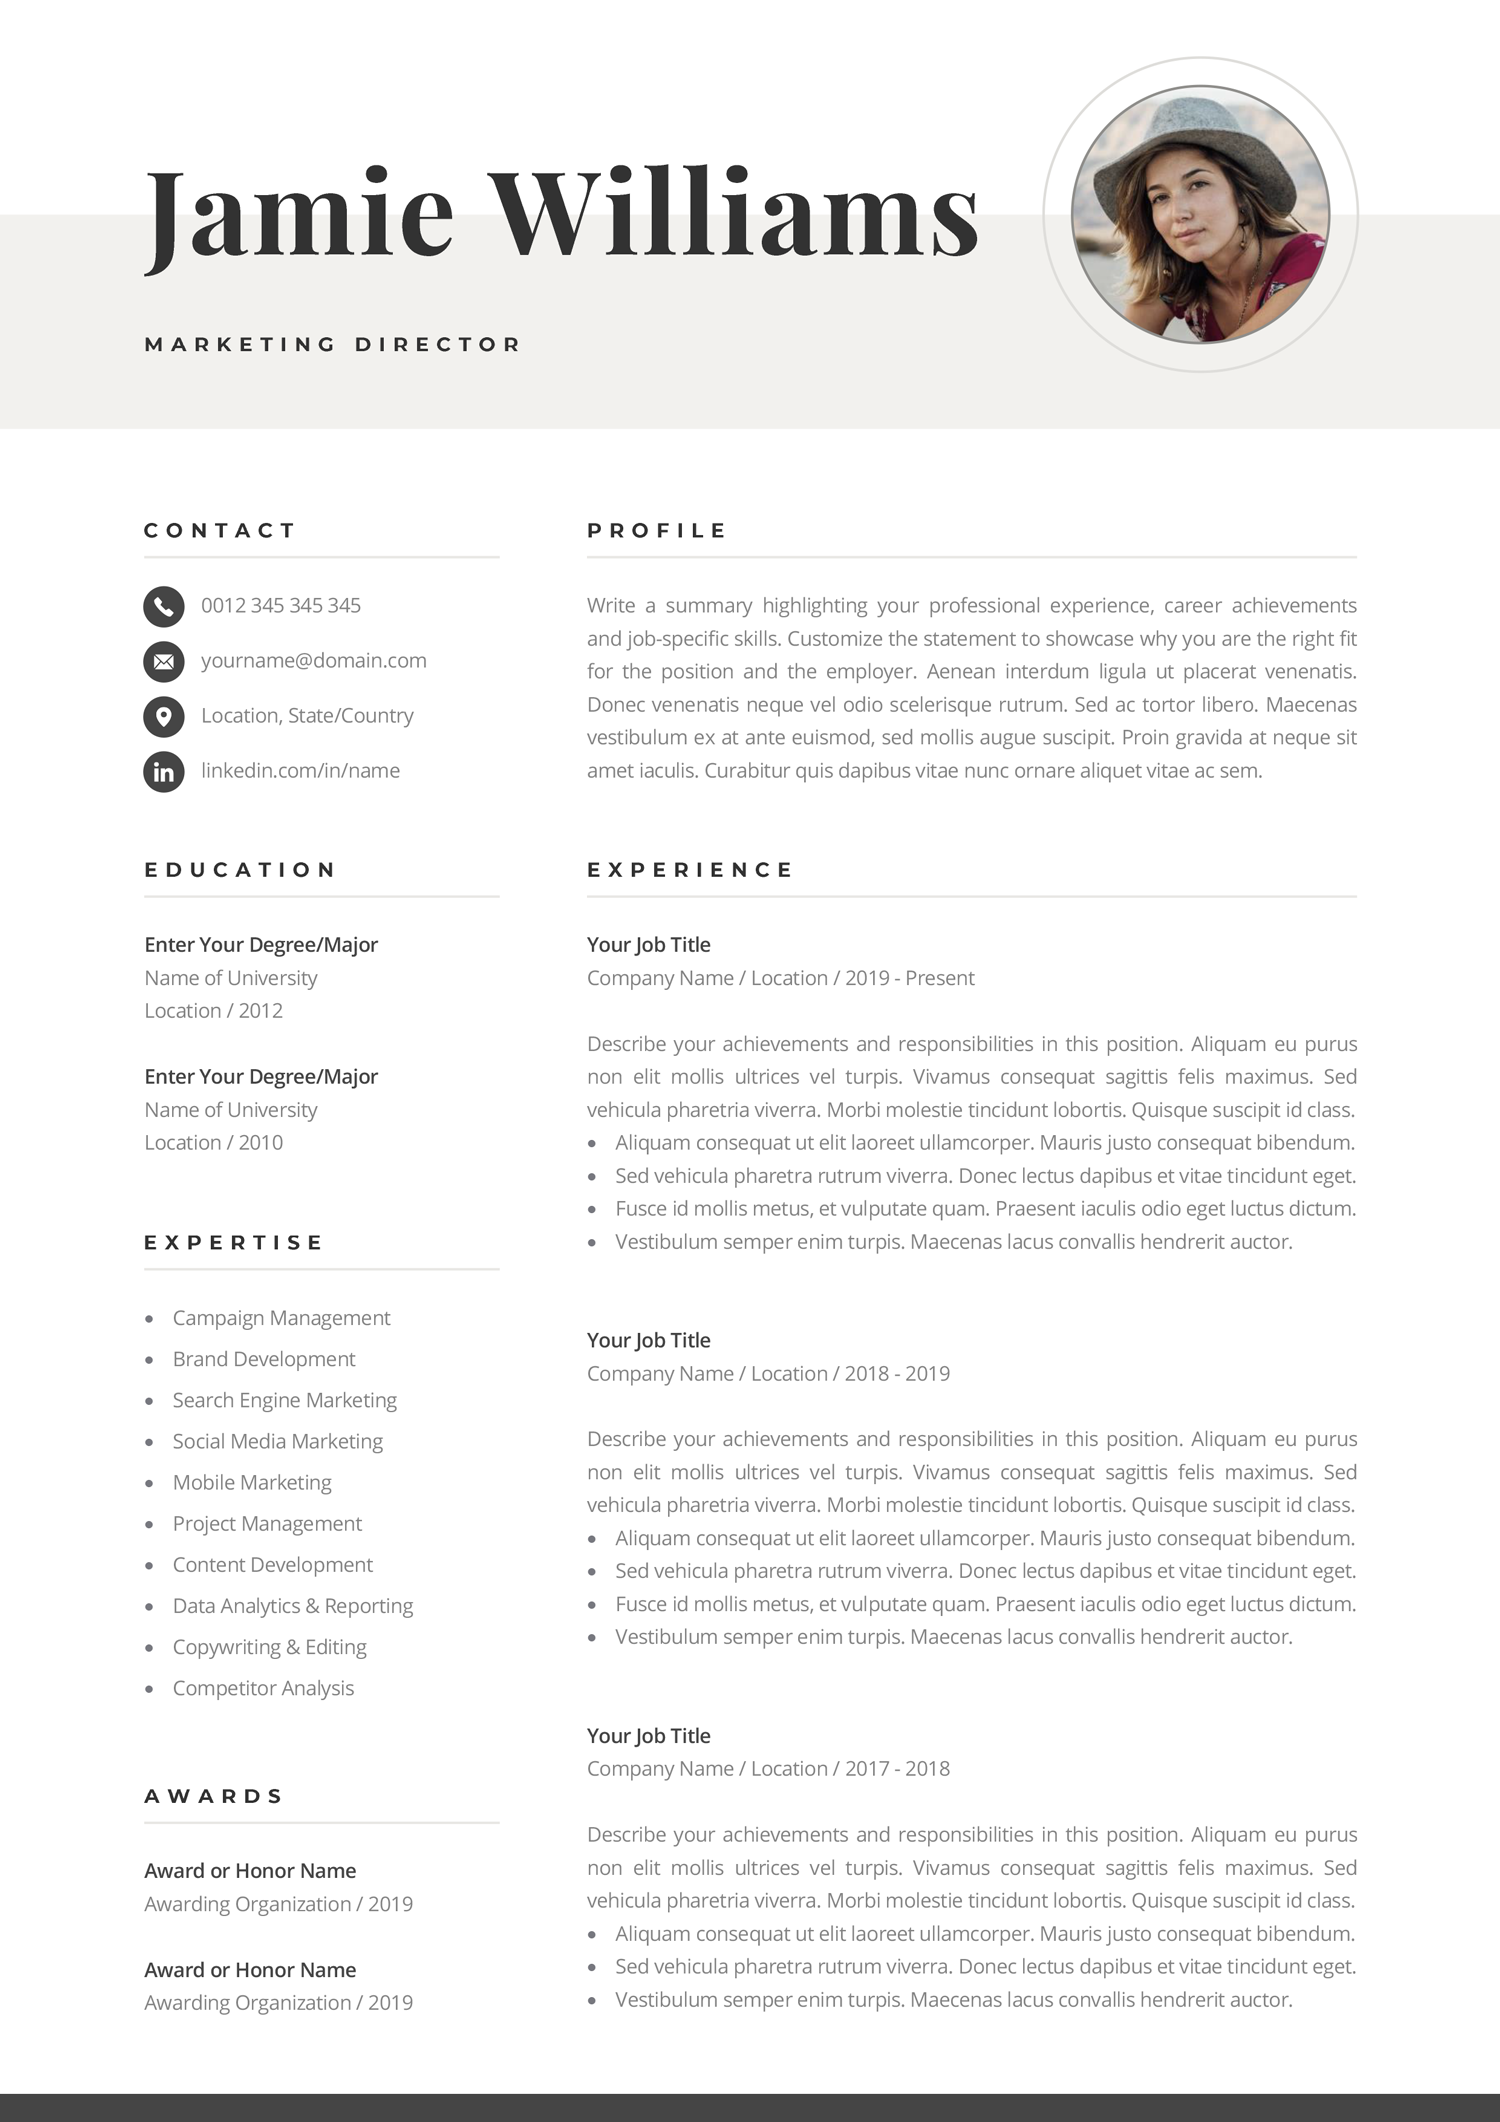 Creative Resume Template With Photo Elegant Design Modern Etsy Creative Resume Templates Resume Template Creative Resume